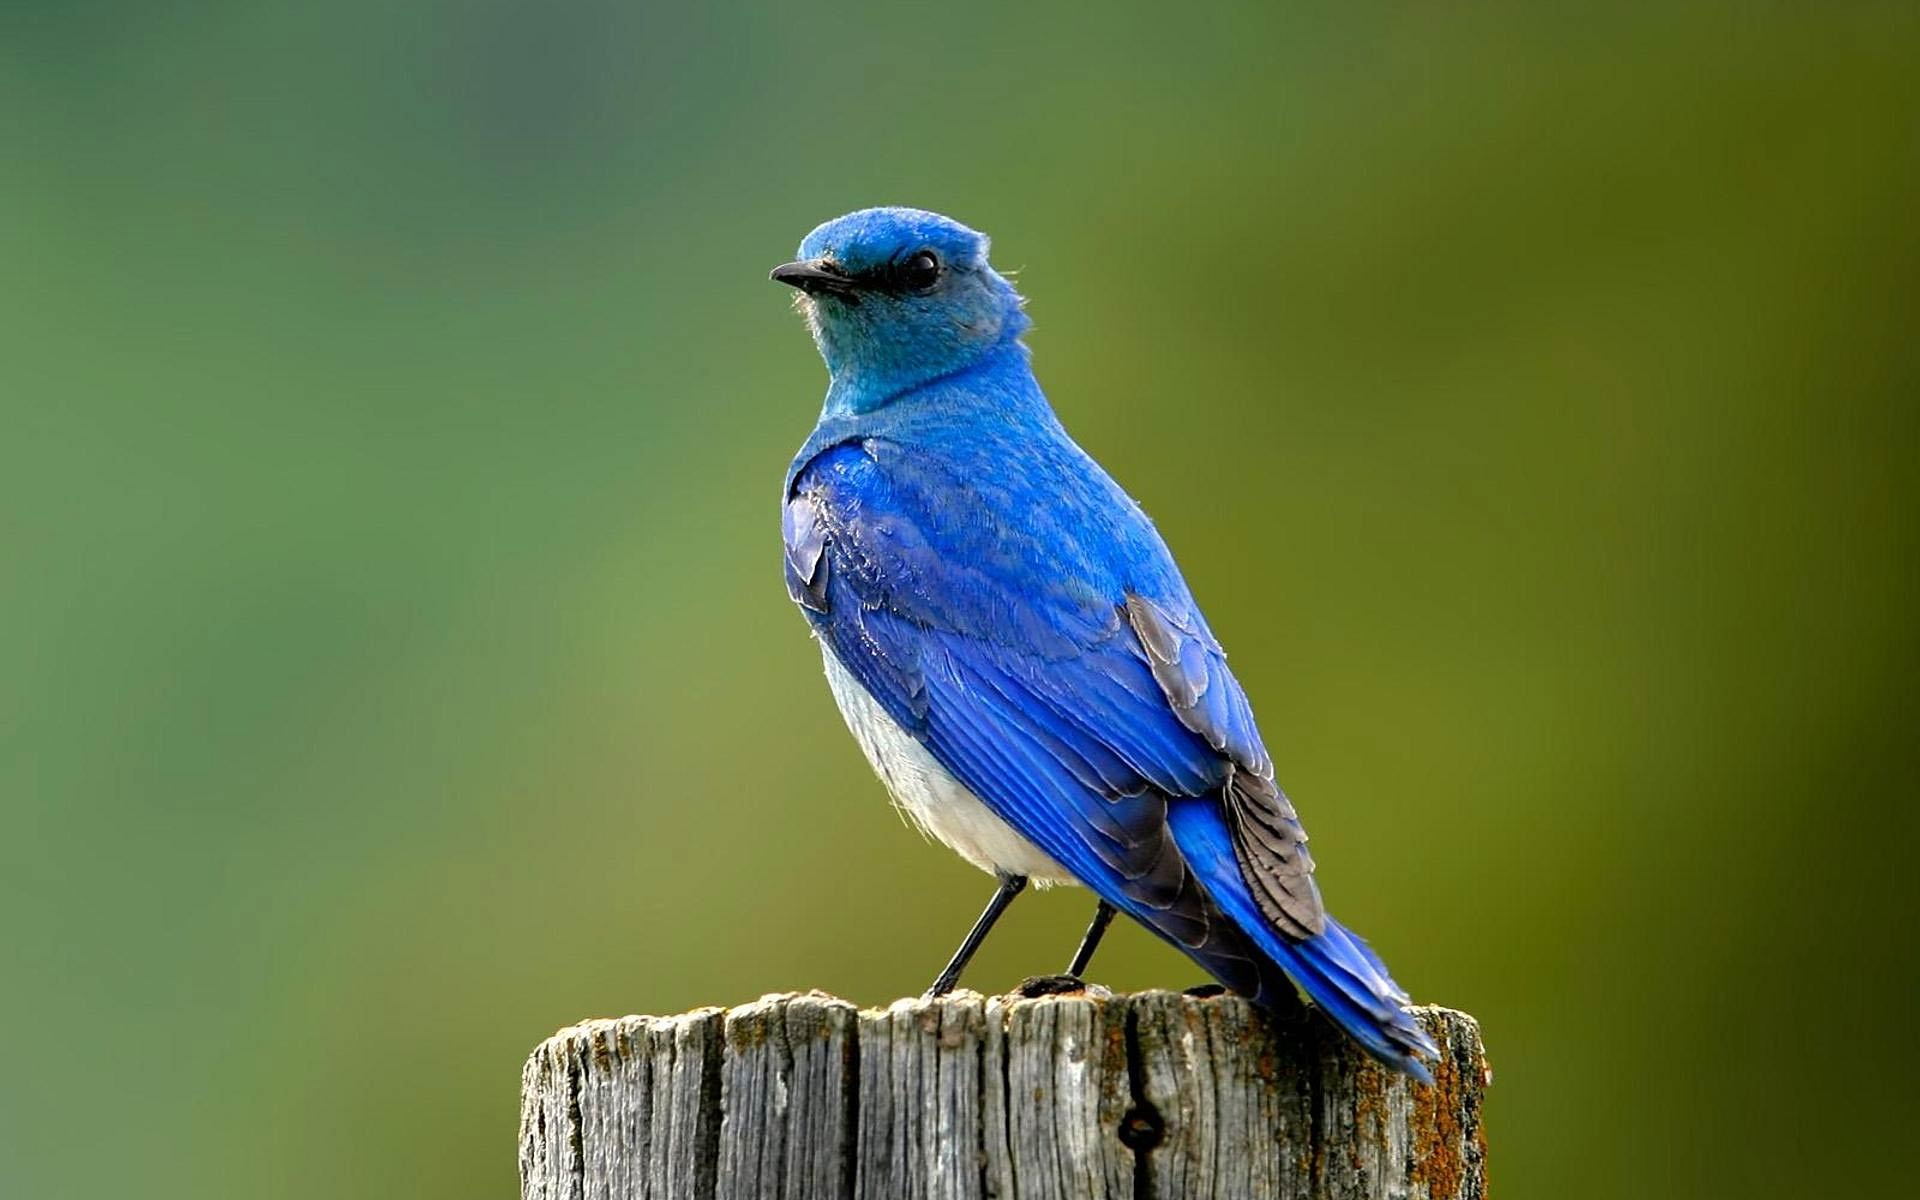 blue bird wallpaper 39978